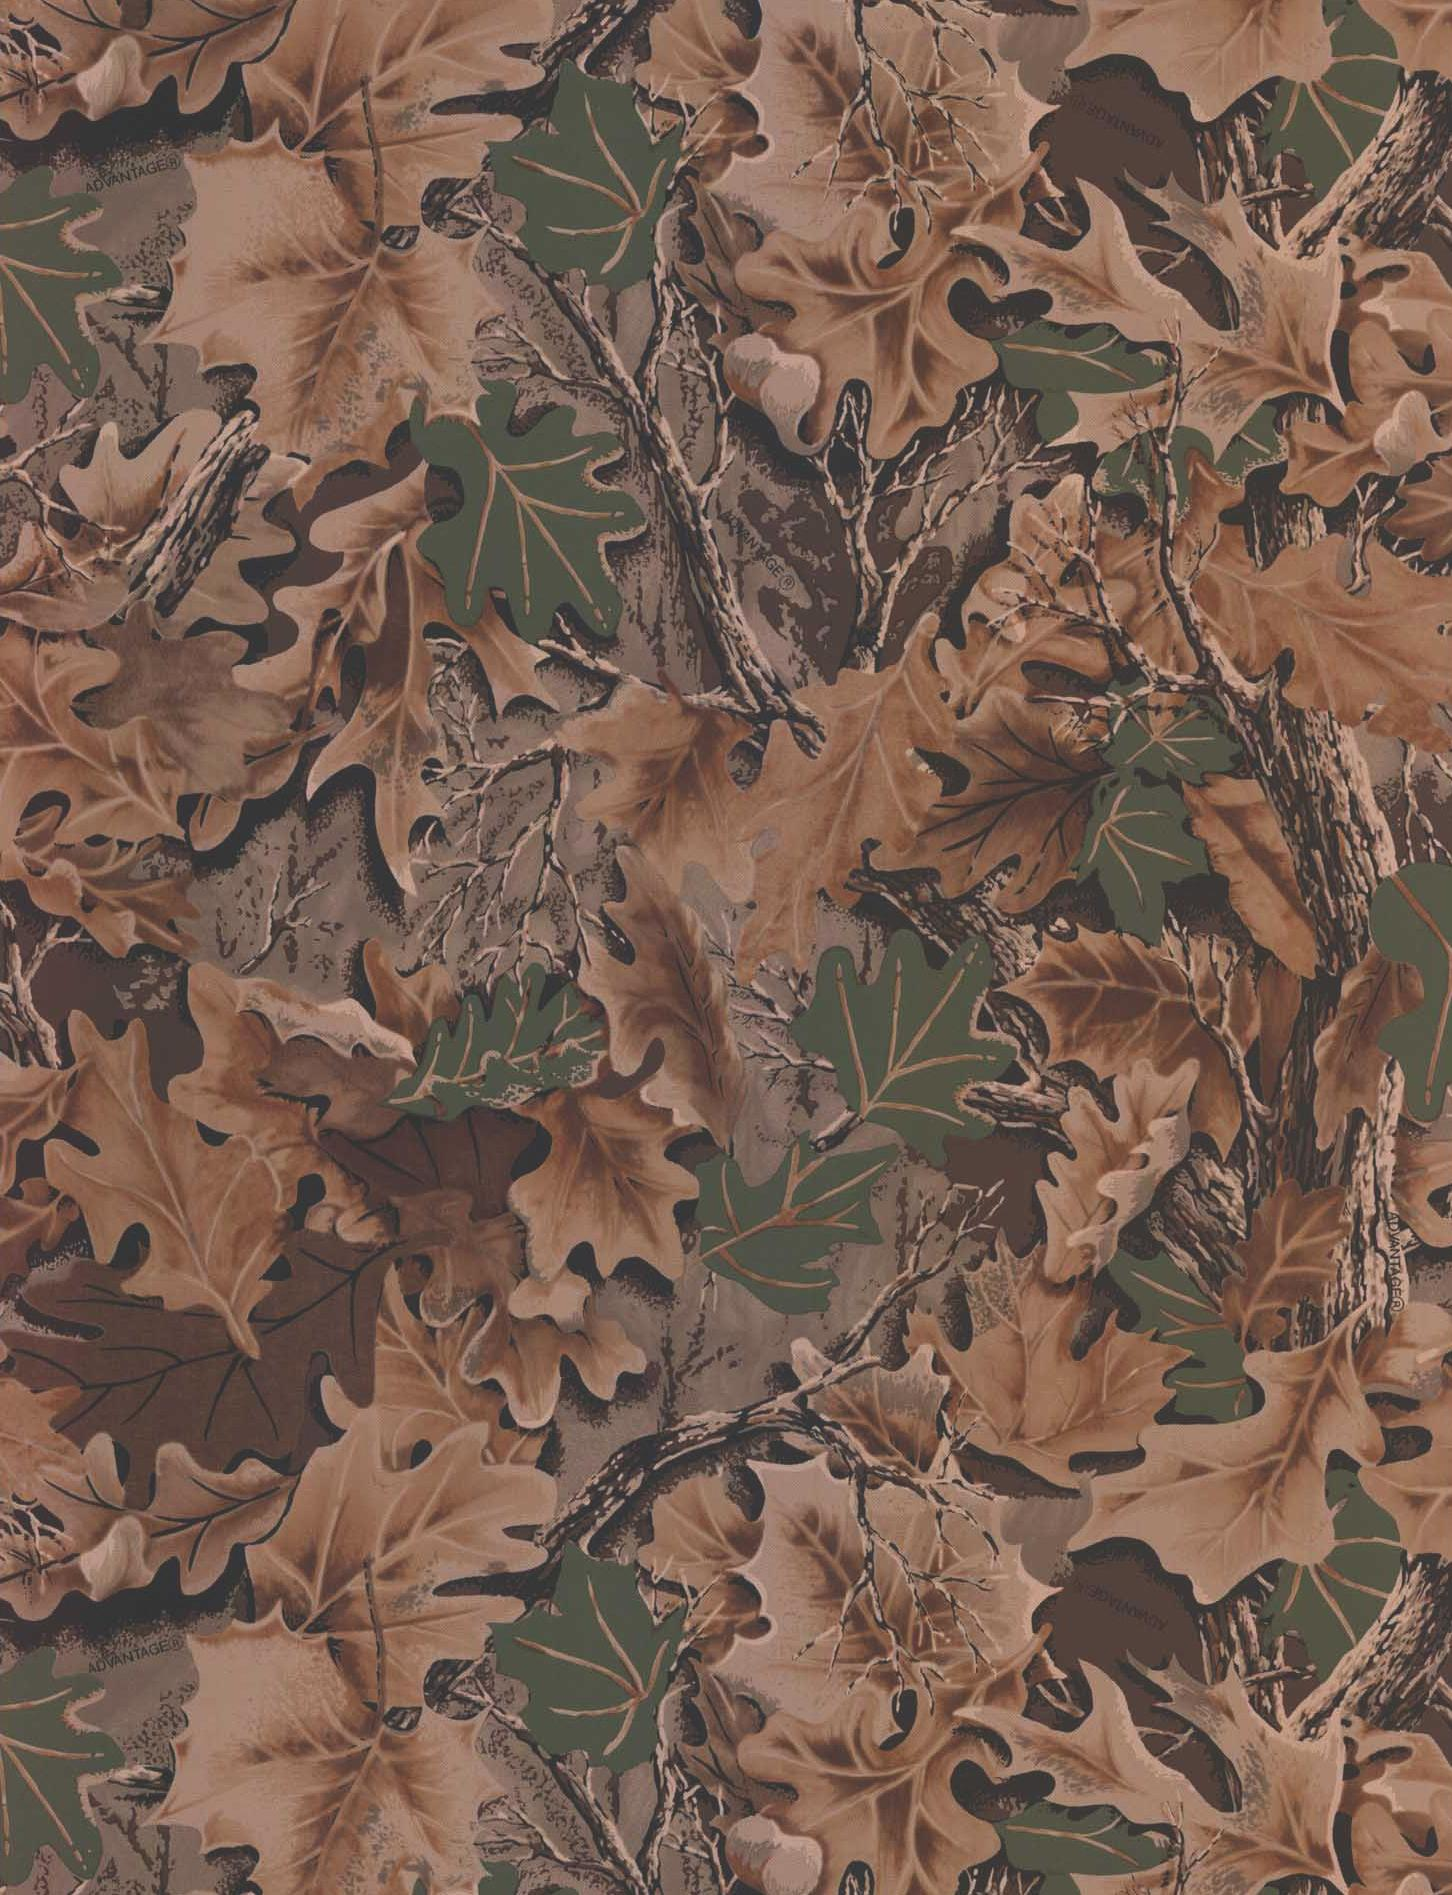 York wallpaper realtree classic camo wallpaper for Camouflage wall mural